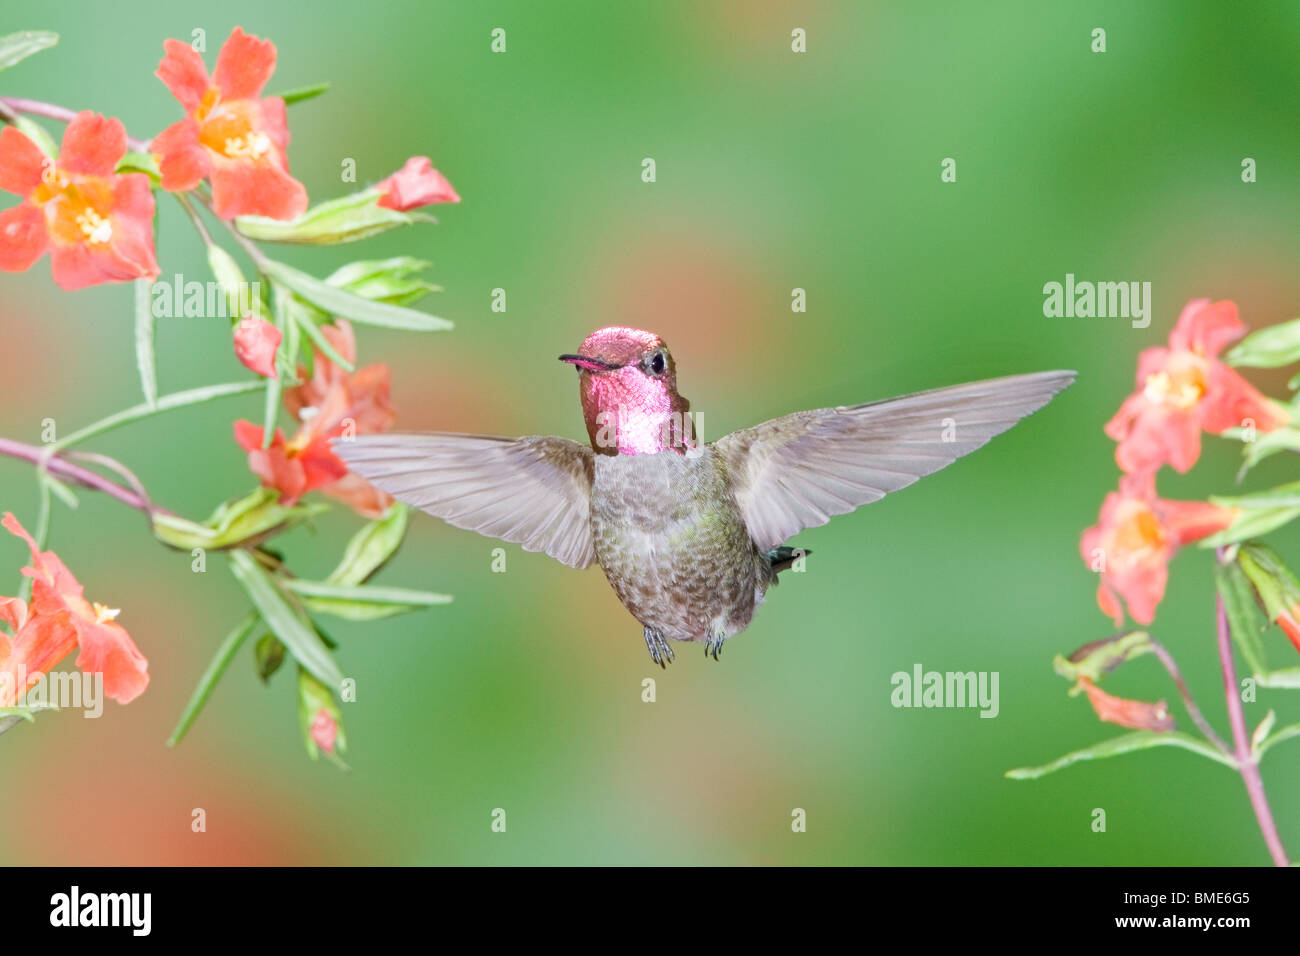 Anna's Hummingbird in Scarlet Monkey Flower - Stock Image